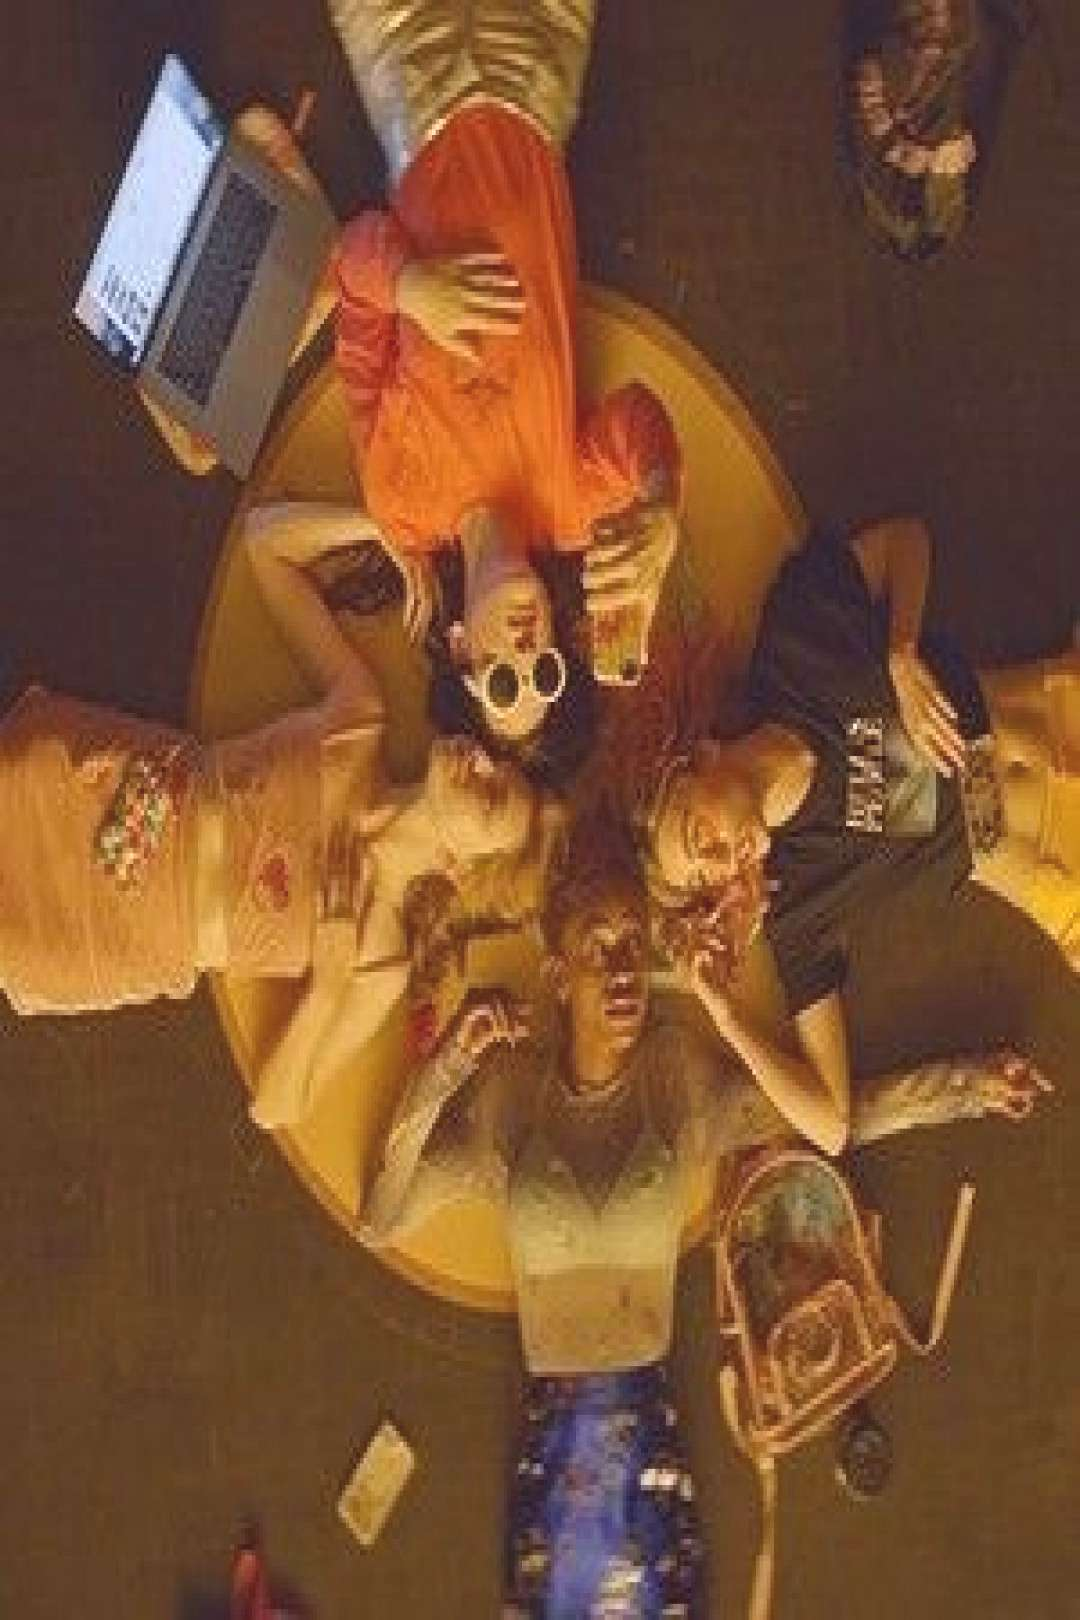 Watch Movie Assassination Nation 2018 Streaming, Watch Movie Assassination Nation 2018 in Stream ..